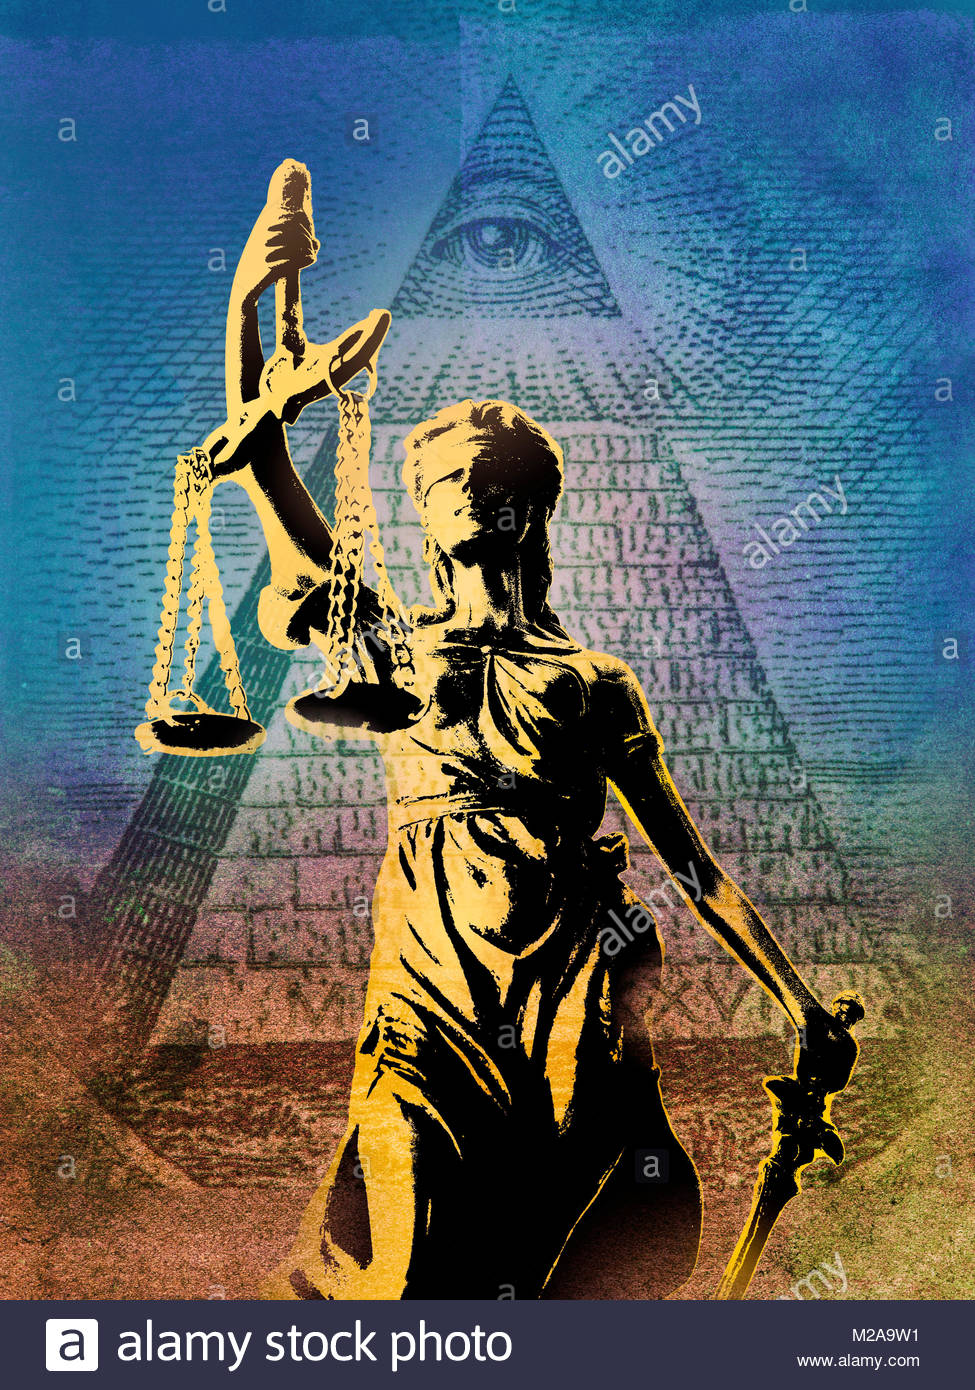 Statue of Lady Justice in front of the Eye of Providence on United States dollar note - Stock Image